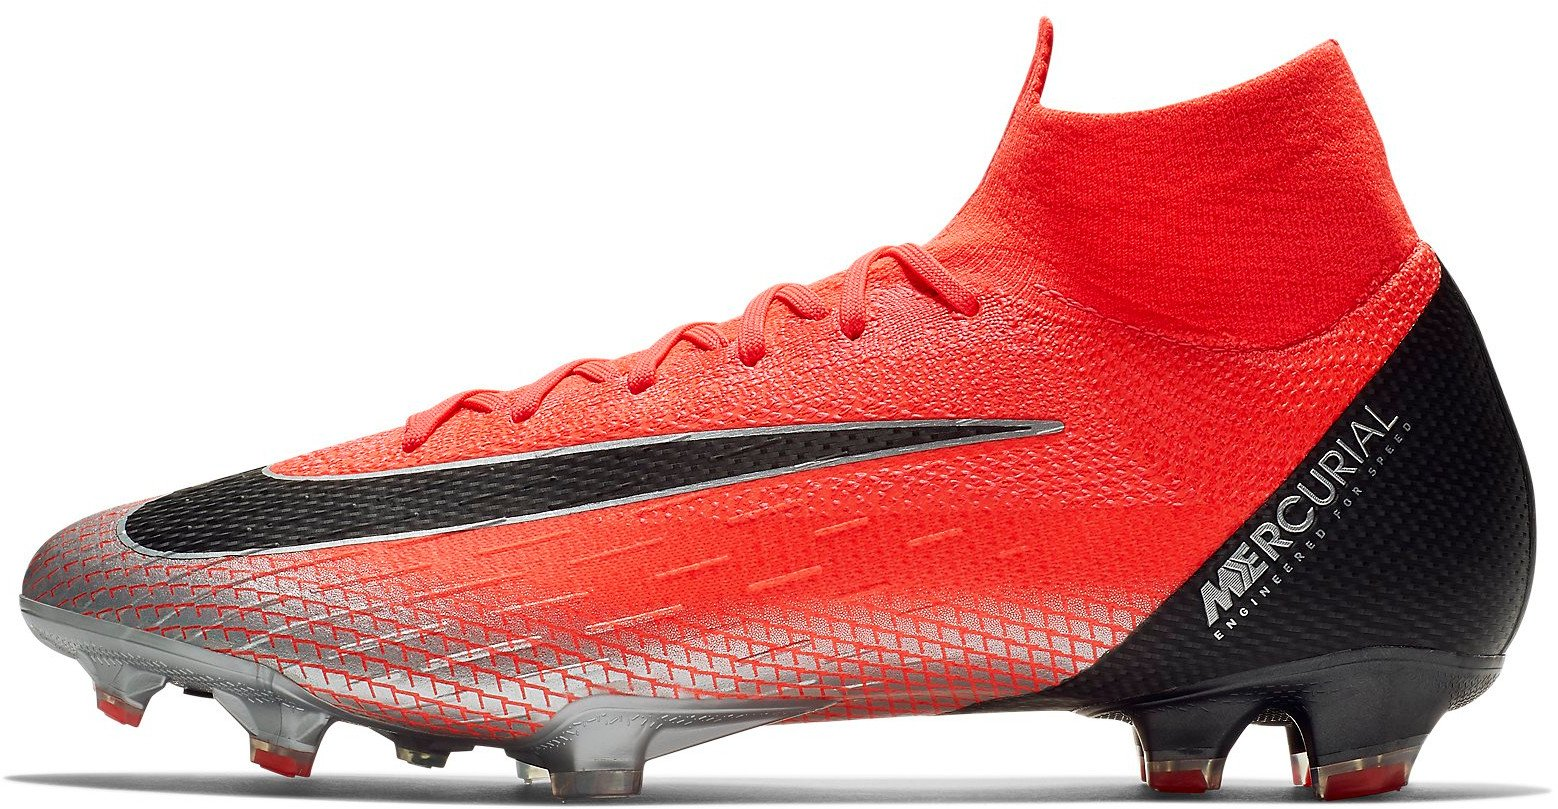 new style a4457 6c45c Football shoes Nike MERCURIAL SUPERFLY 360 ELITE CR7 FG